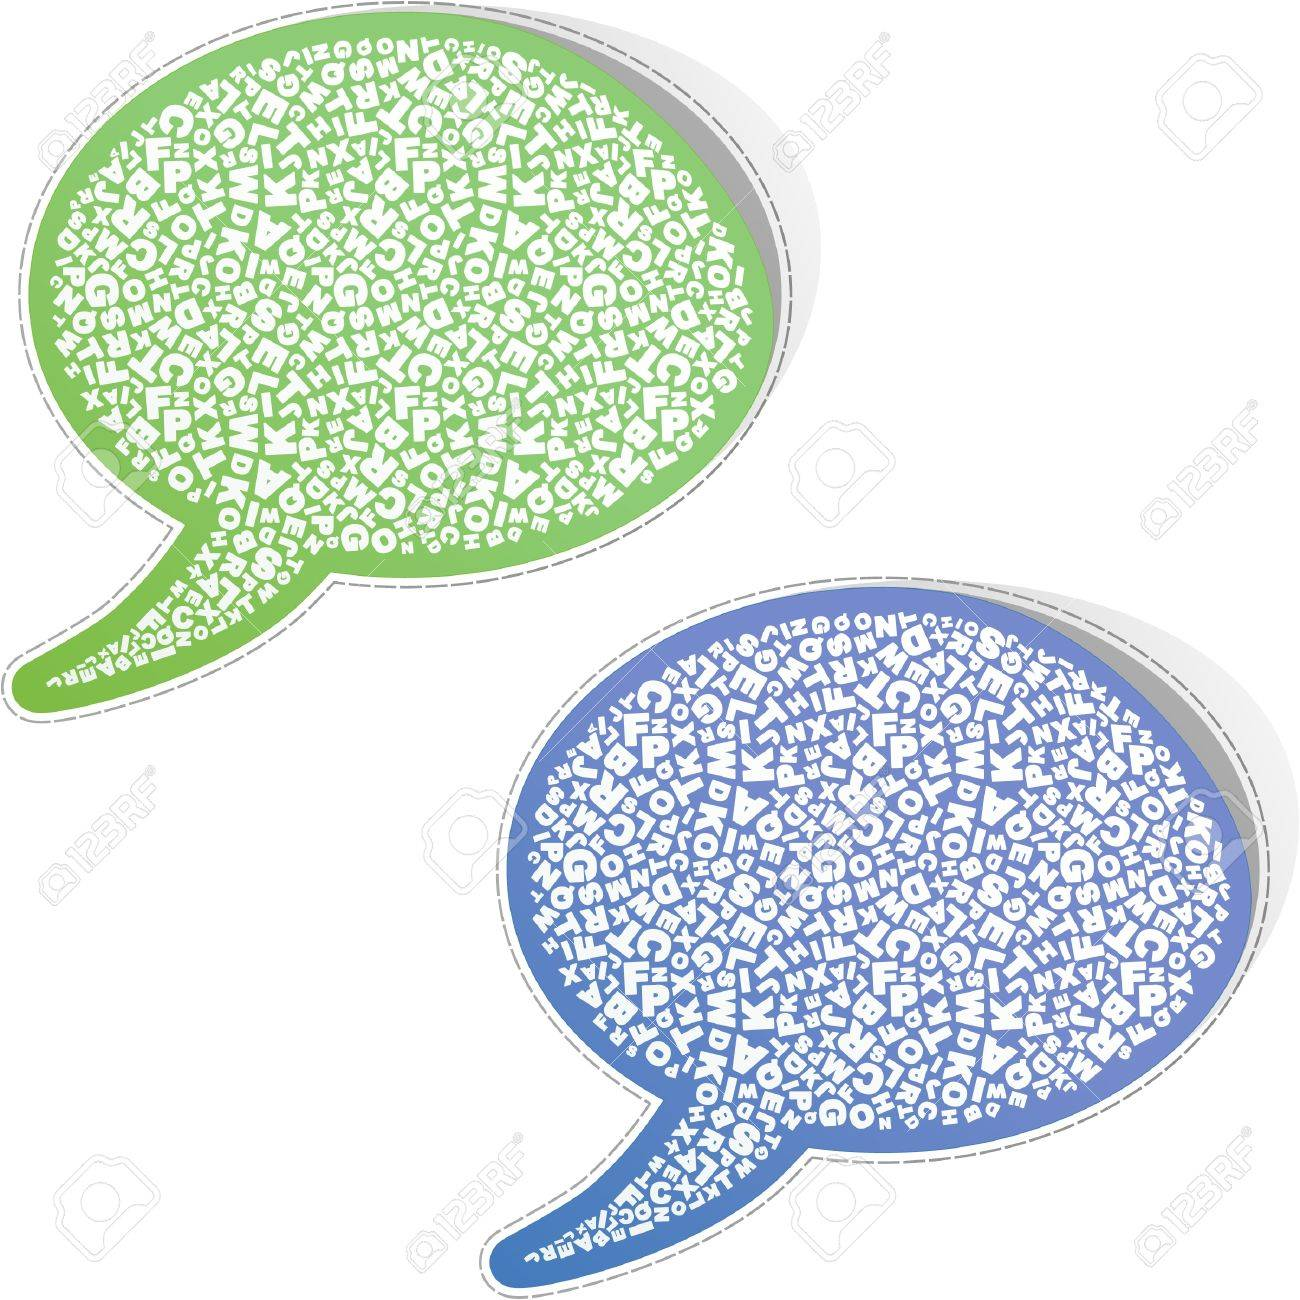 Speech bubble. Sticker with letter mix. Stock Vector - 8954364